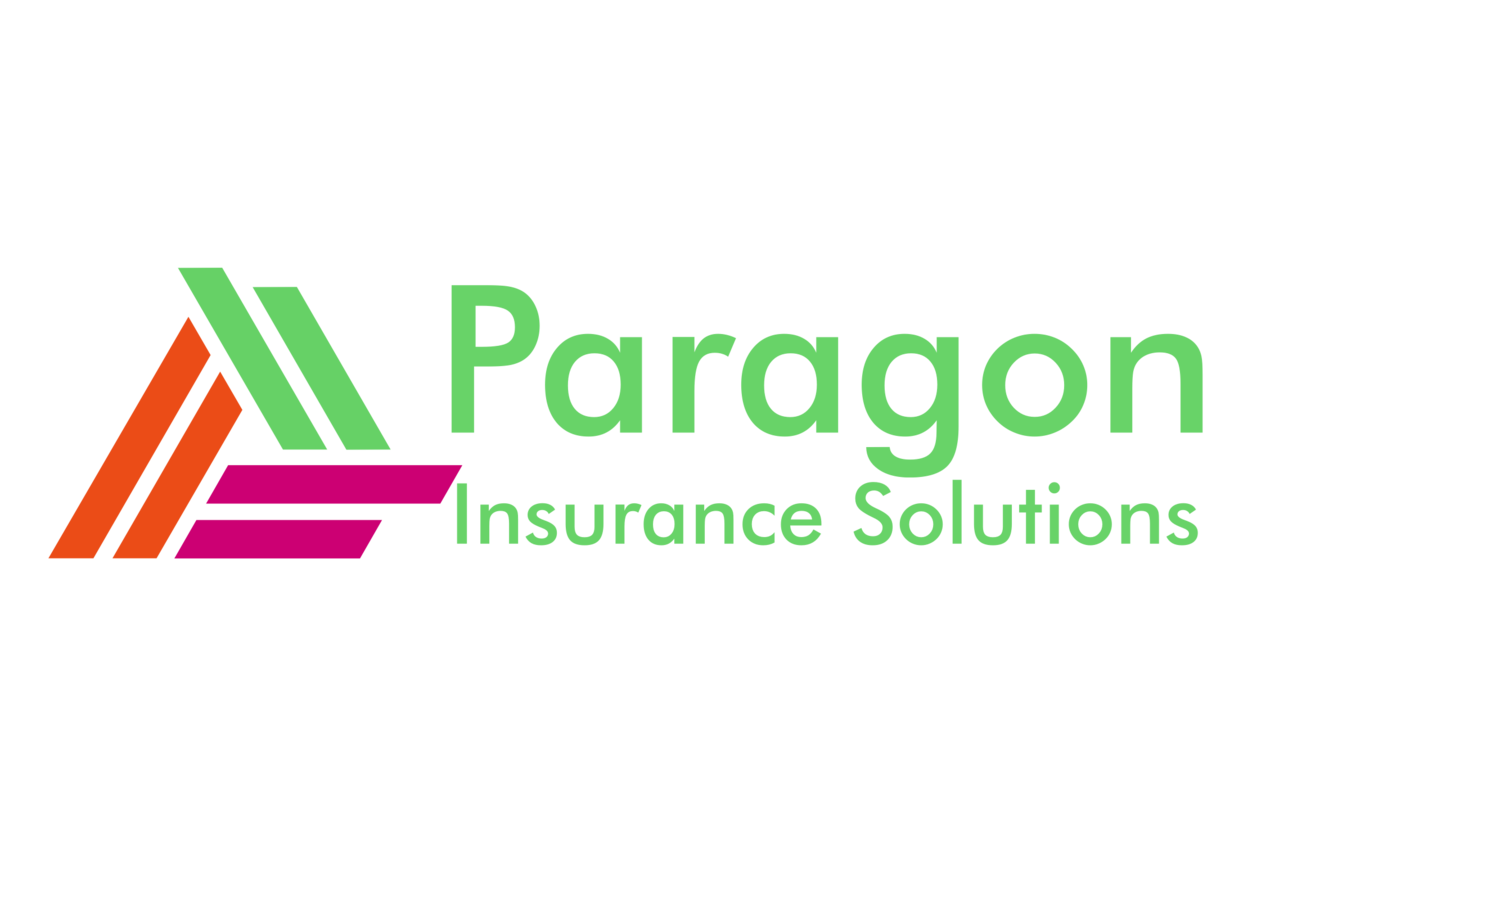 Paragon Insurance Solutions